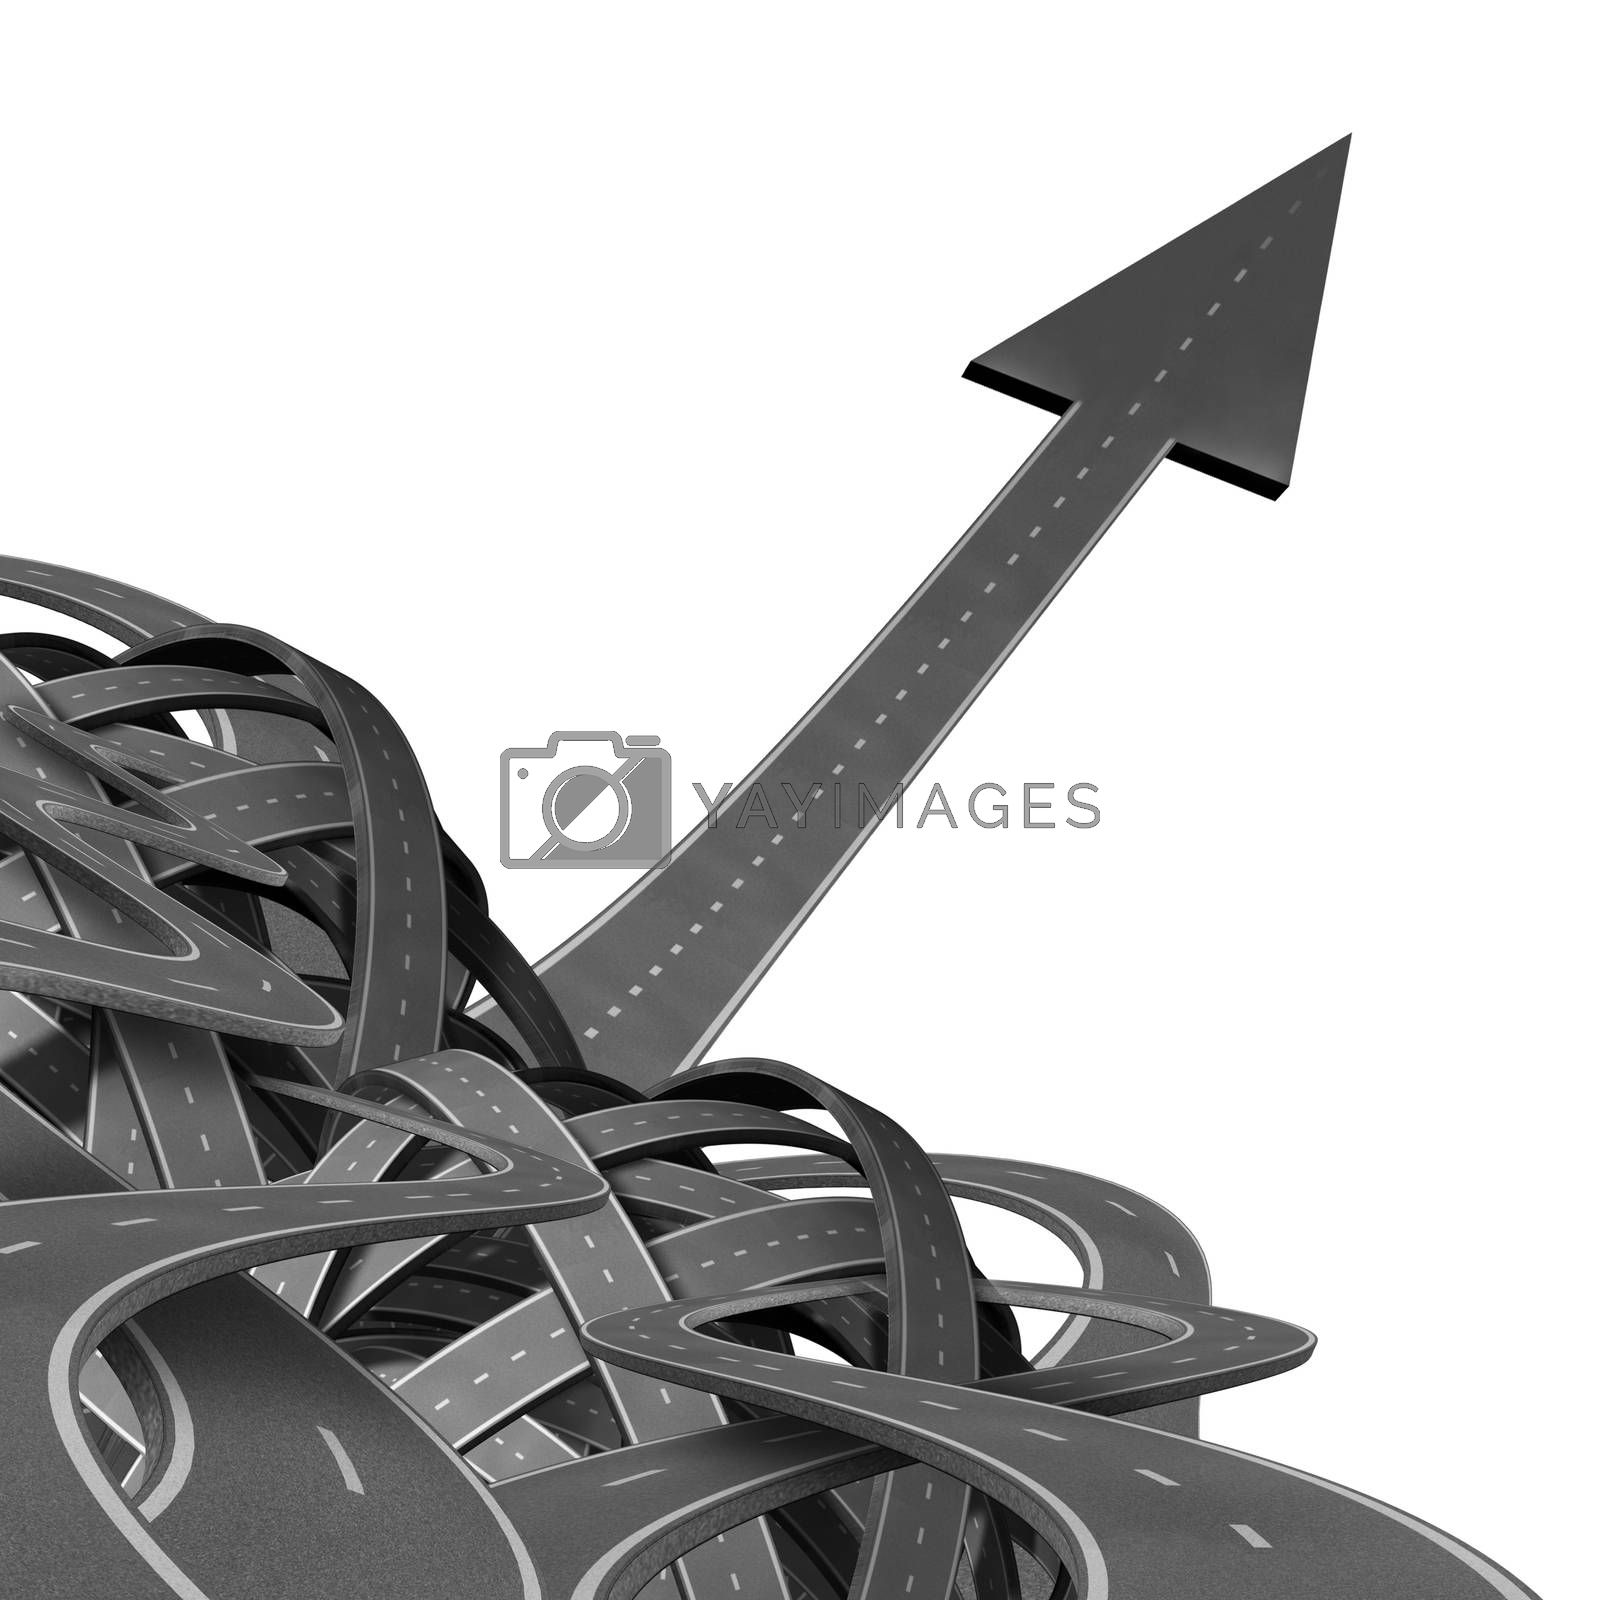 Breaking free and standing out from the crowd as a pile of tangled confused roads and a straght successful highway emerging as an arrow shape in a focused strategic motion.